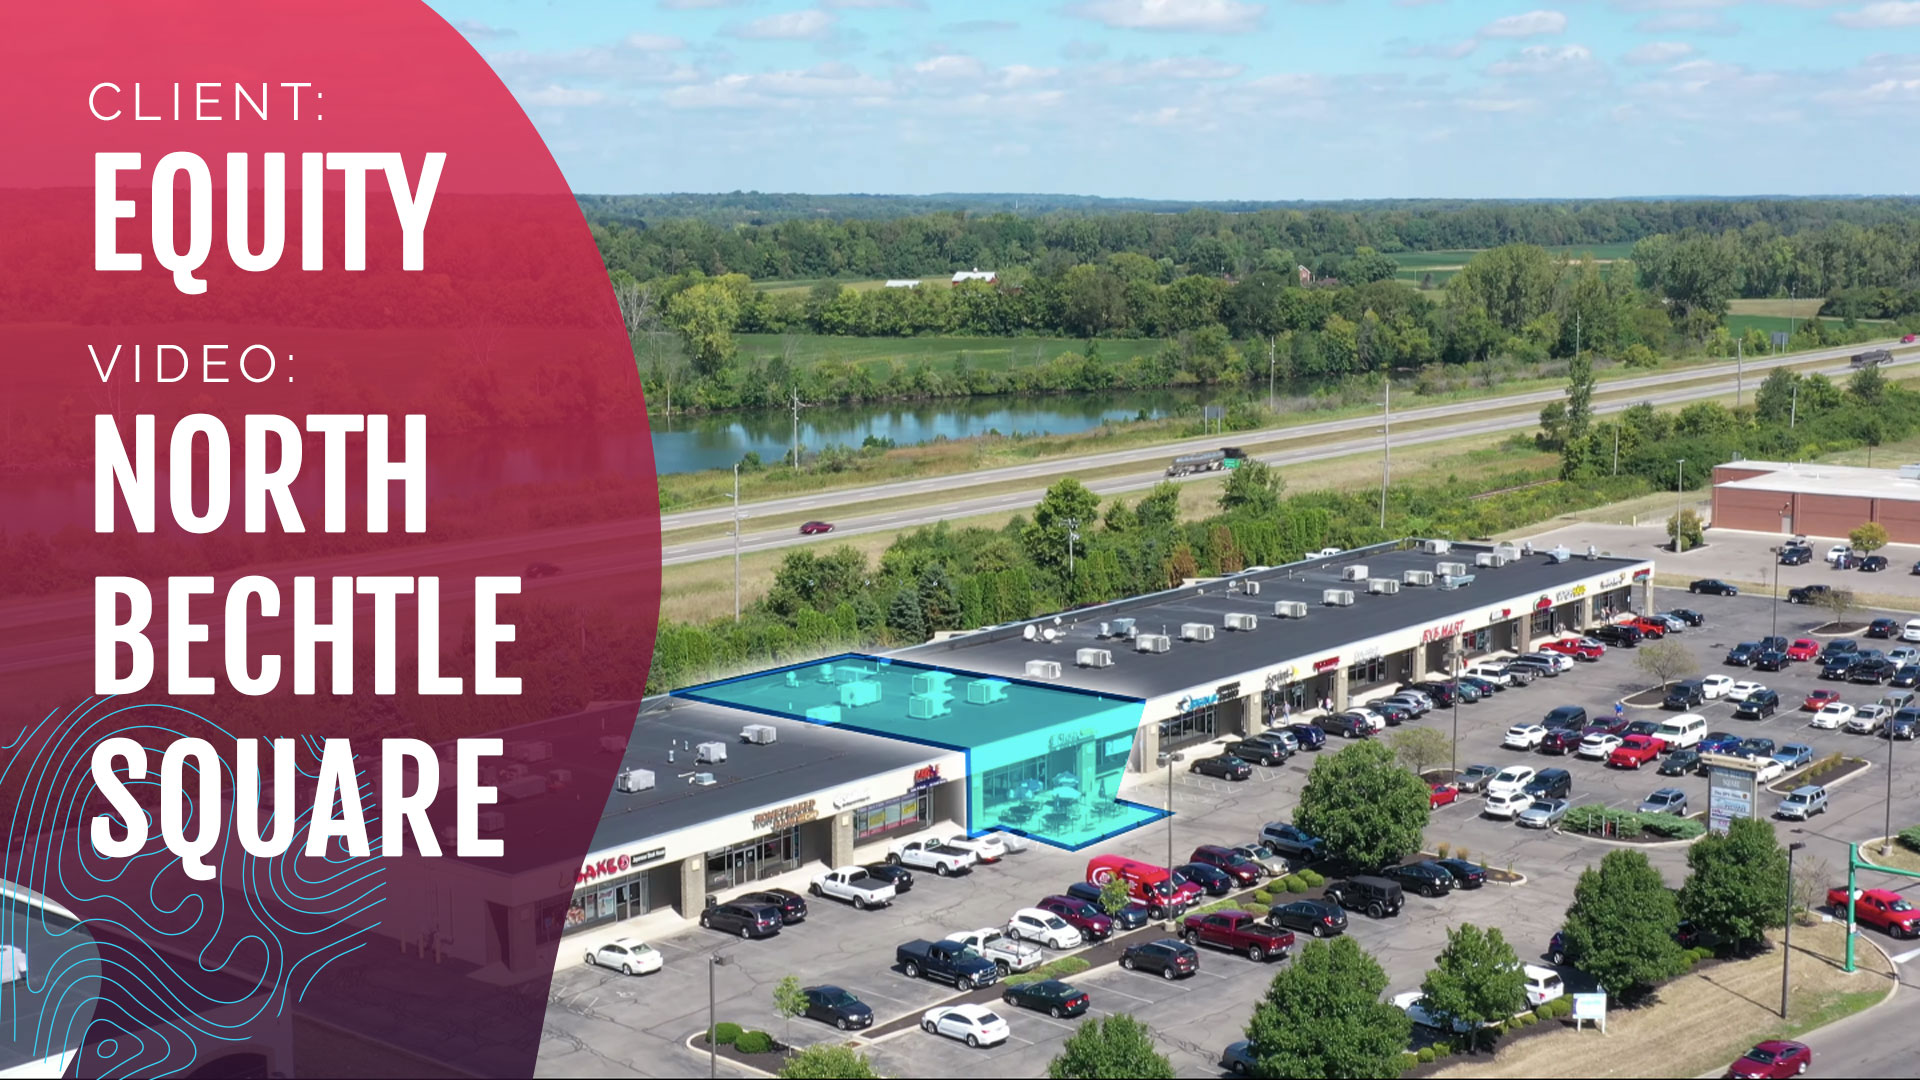 Equity – North Bechtle Square Commercial Property Video